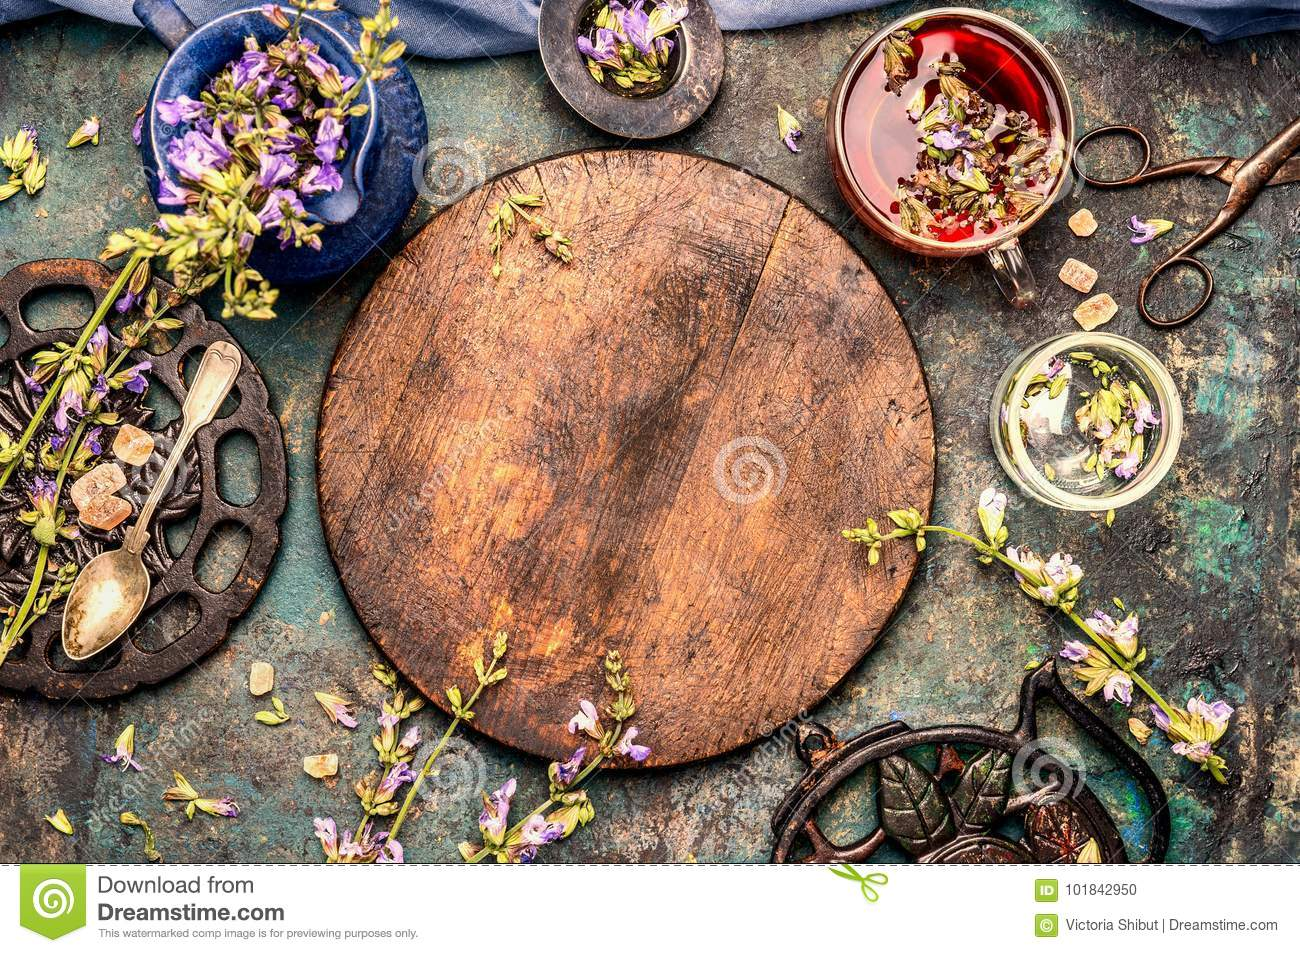 Healthful herbs tea setting around round wooden board on rustic background, top view